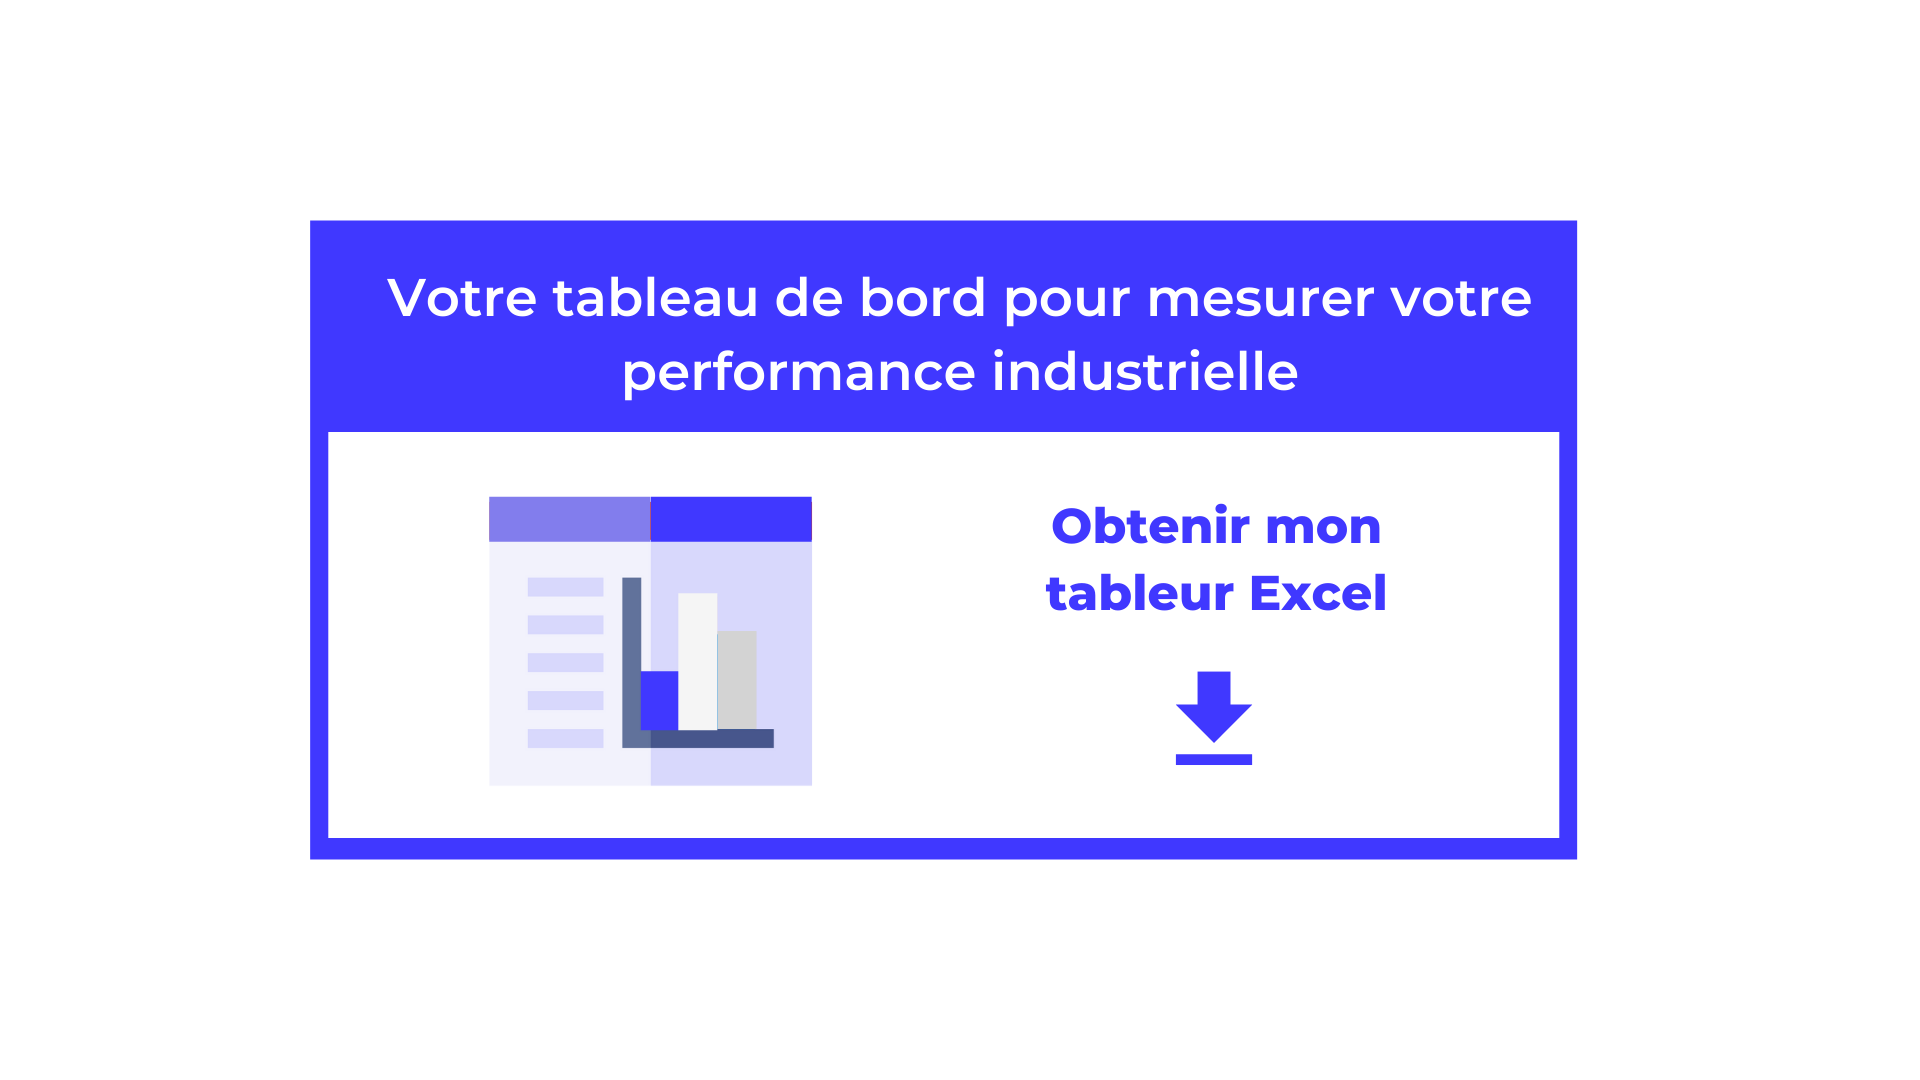 CTA-outil-de-calcul-de-la-performance-industrielle